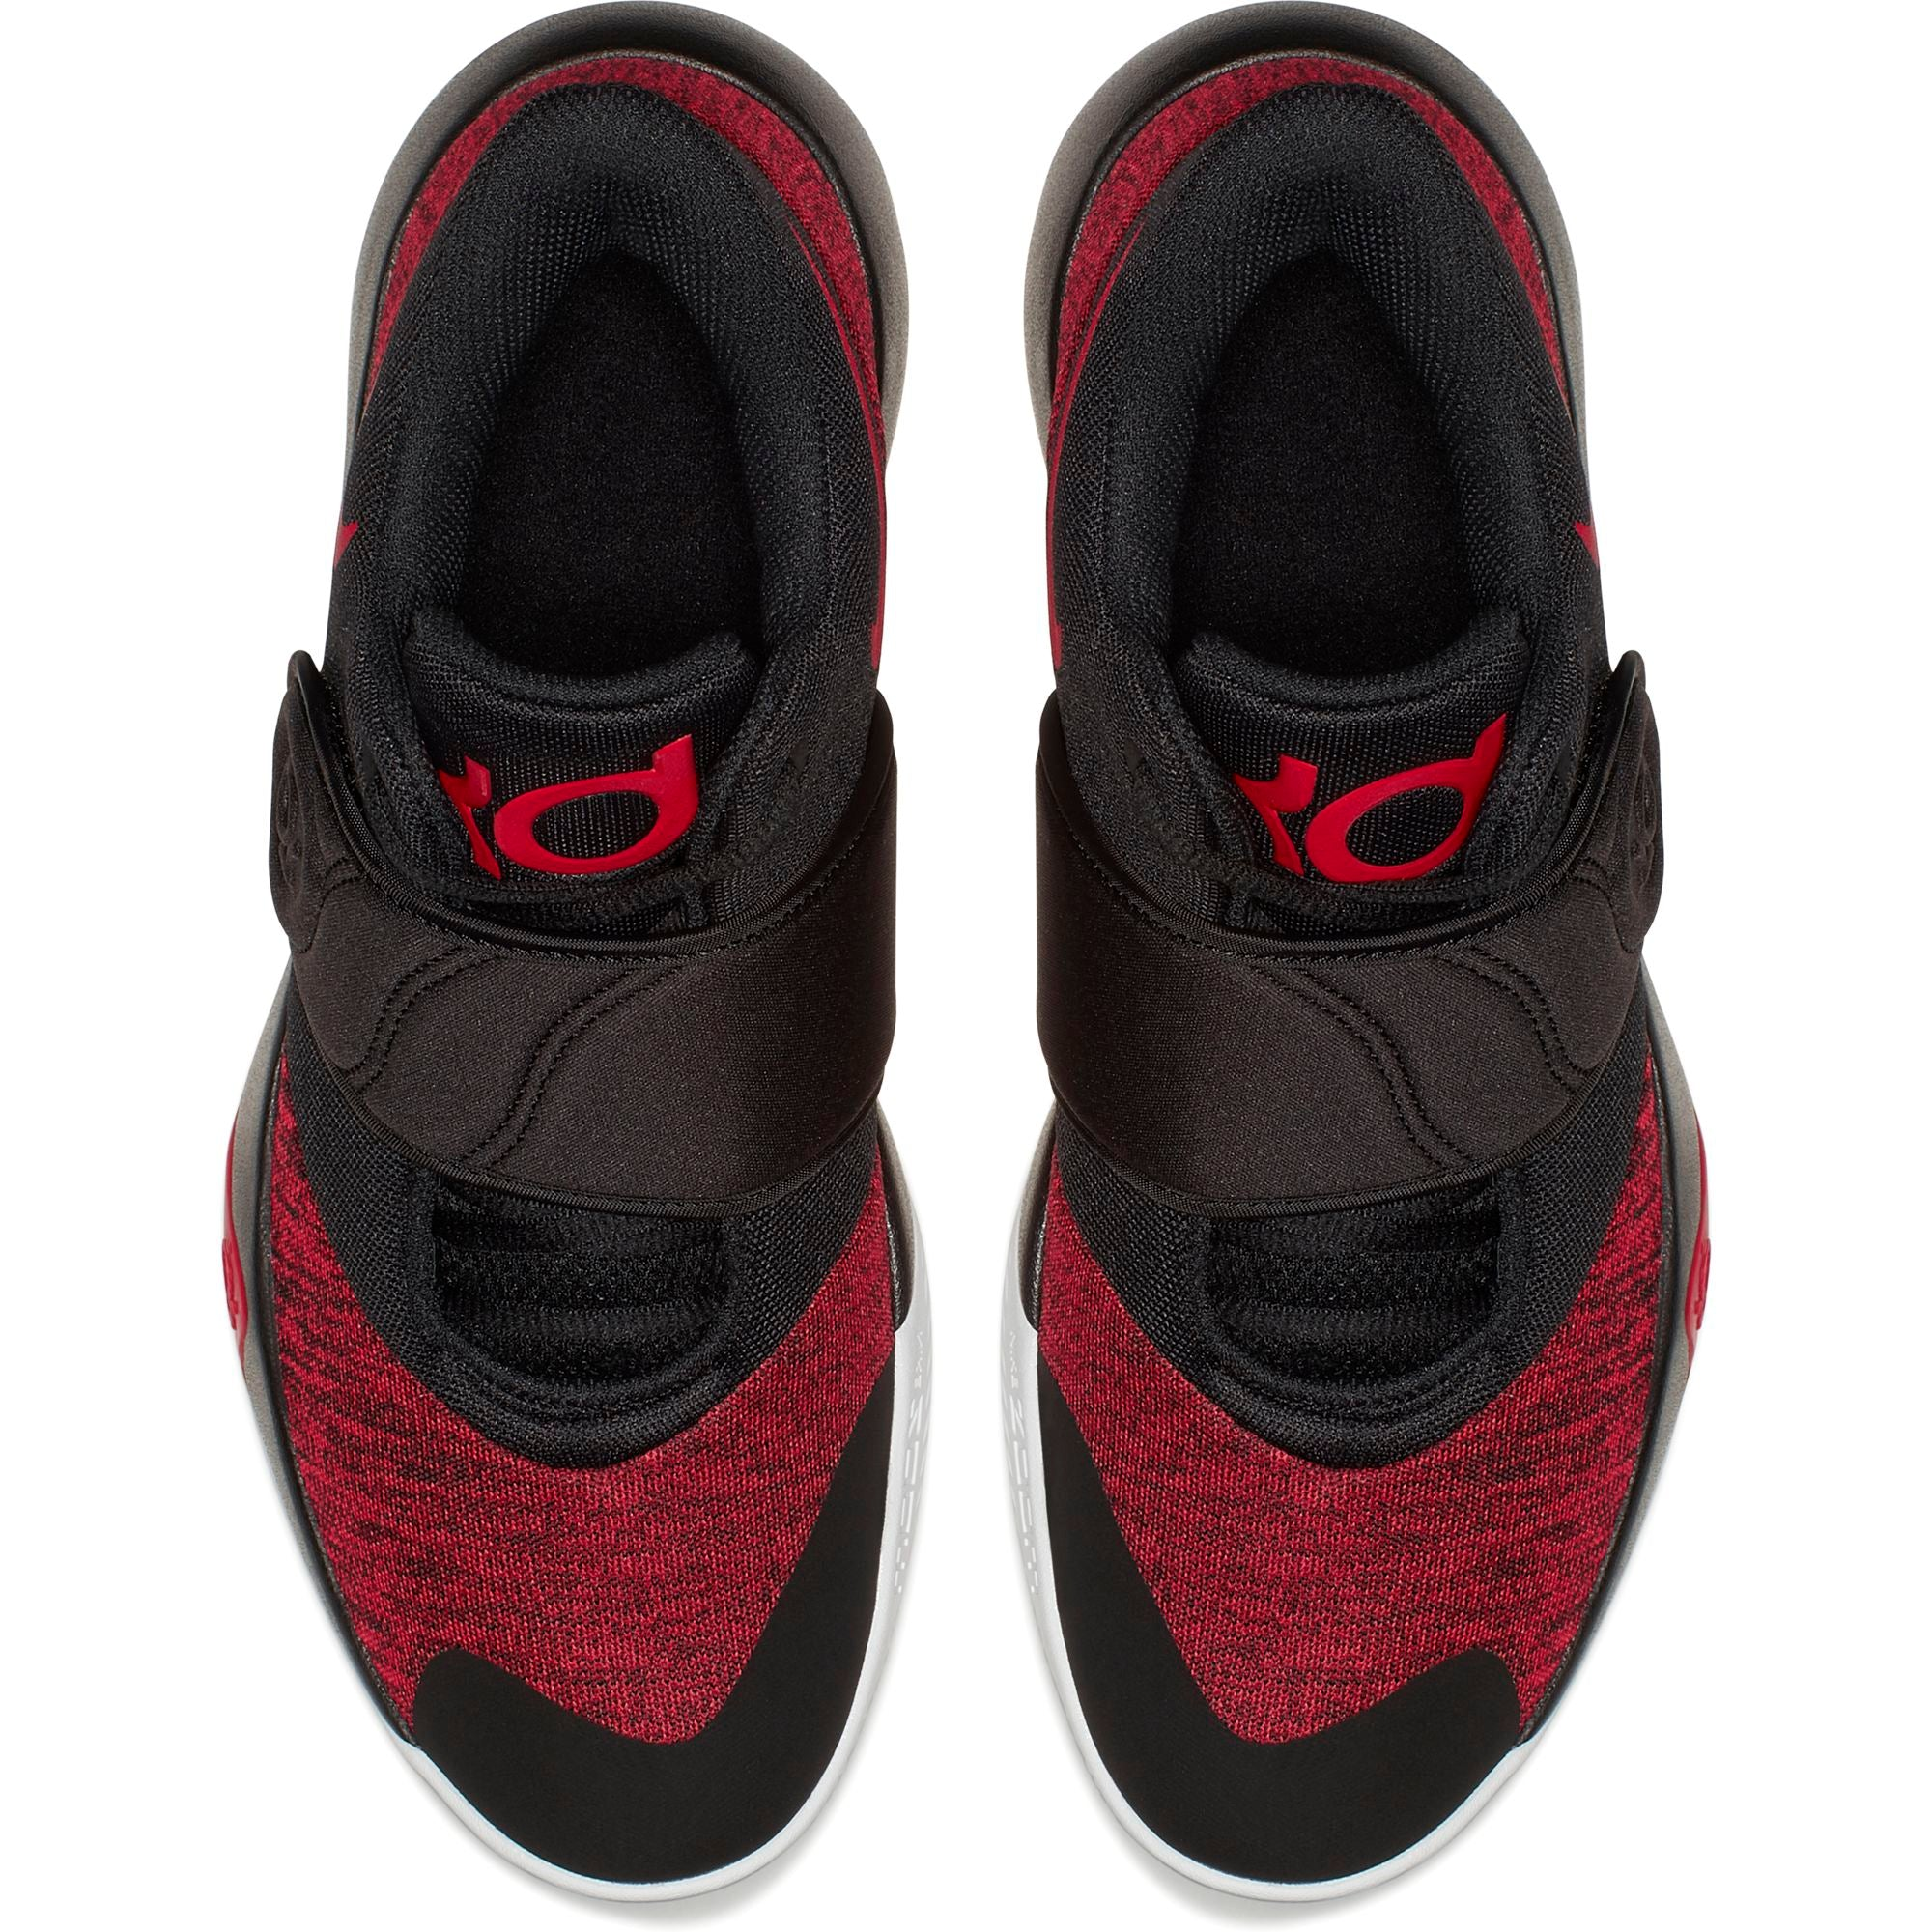 Nike KD Trey 5 VI Low Basketball Shoe - Black/University Red/White